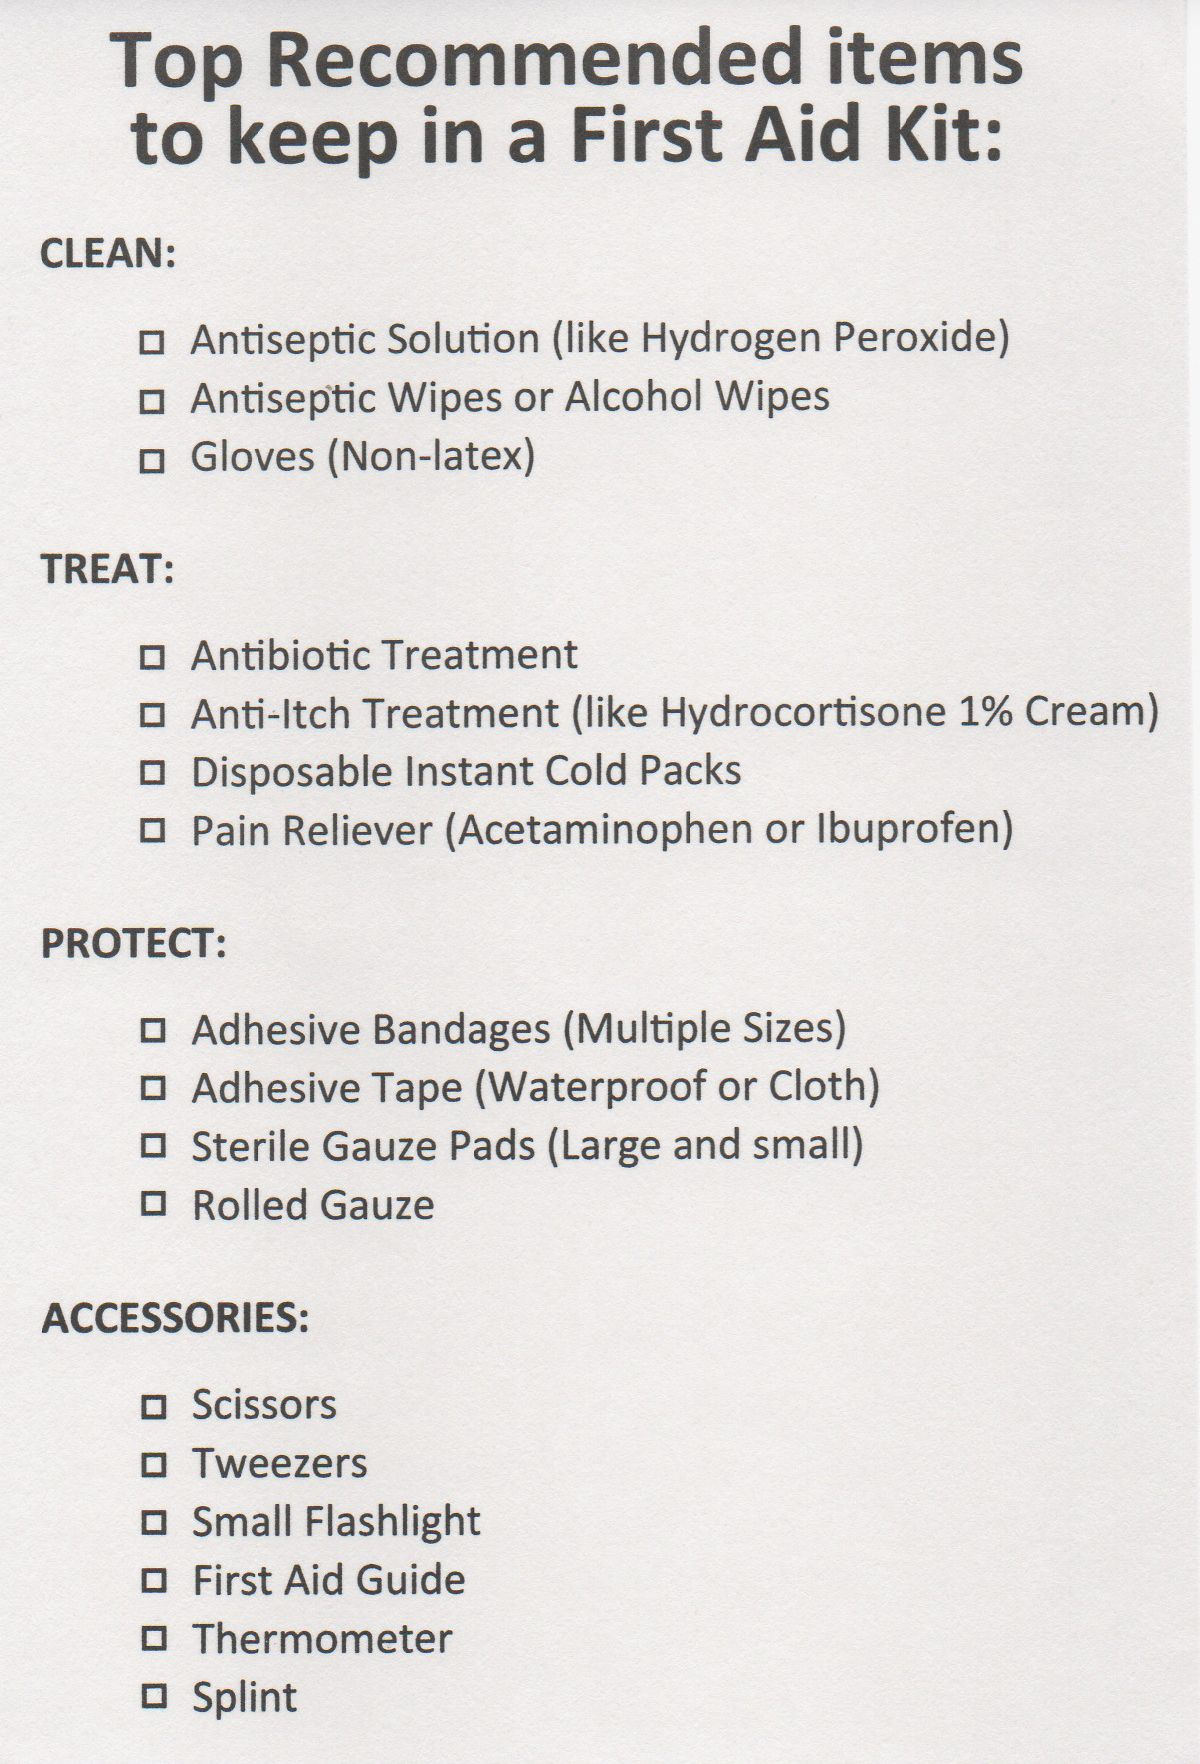 A Printable Checklist For The Top Recommended Items To Keep In A First Aid Kit